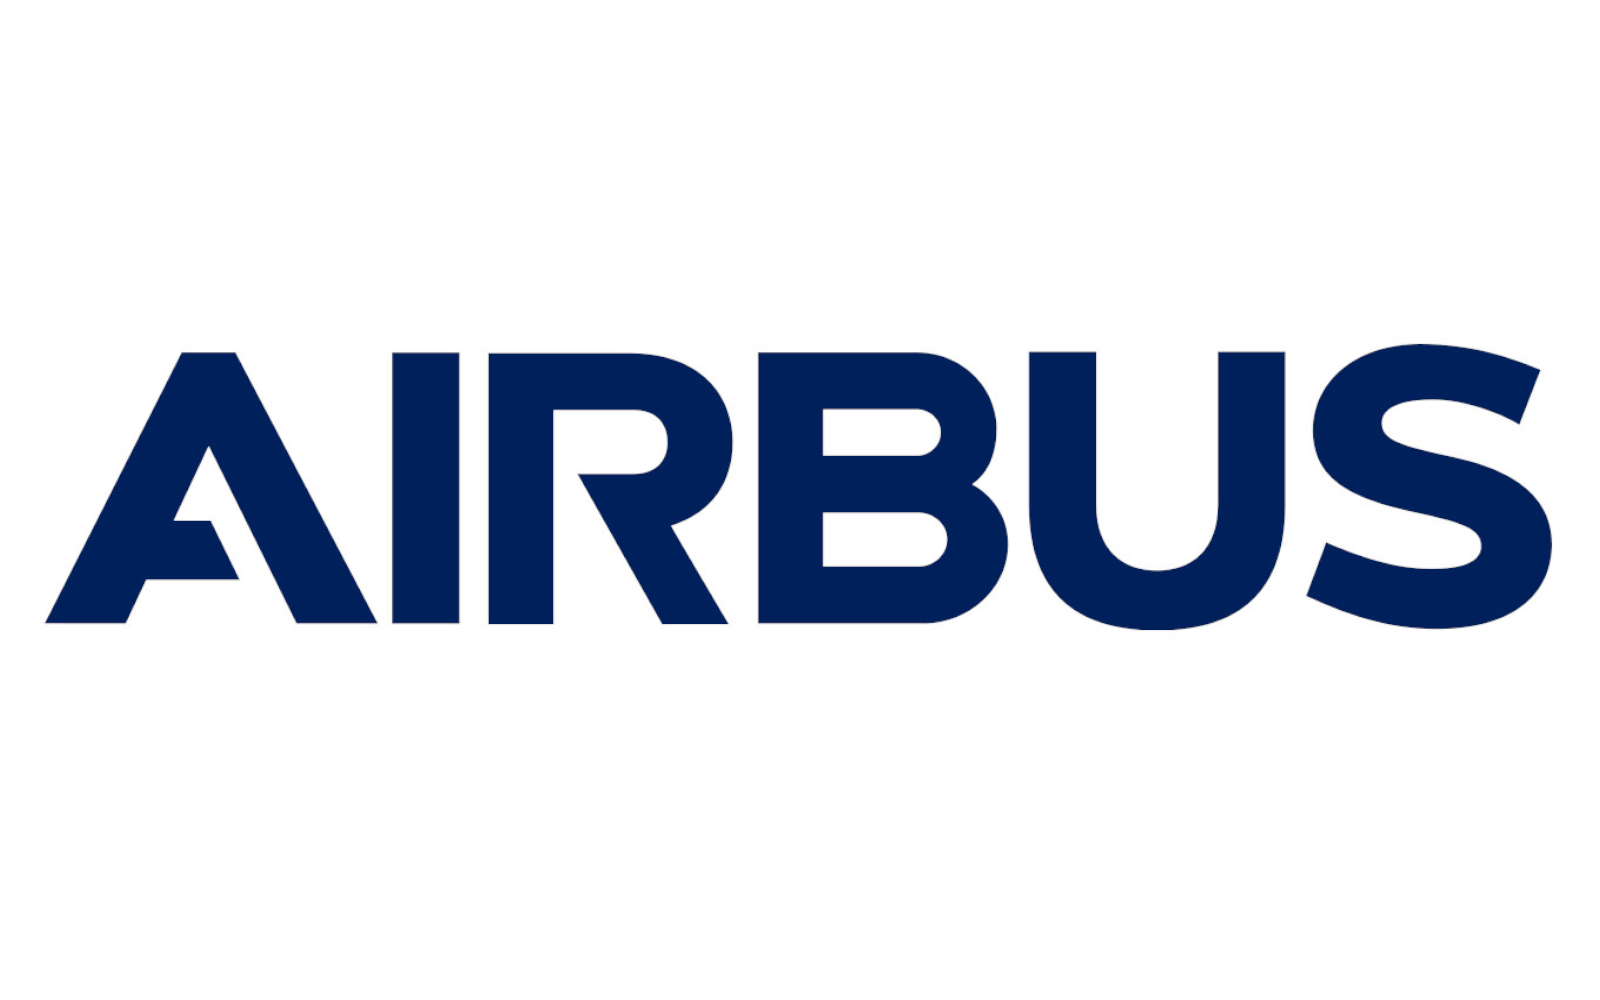 CENTUM ADENEO supplier of a hybrid light helicopter demonstrator for Airbus Helicopters